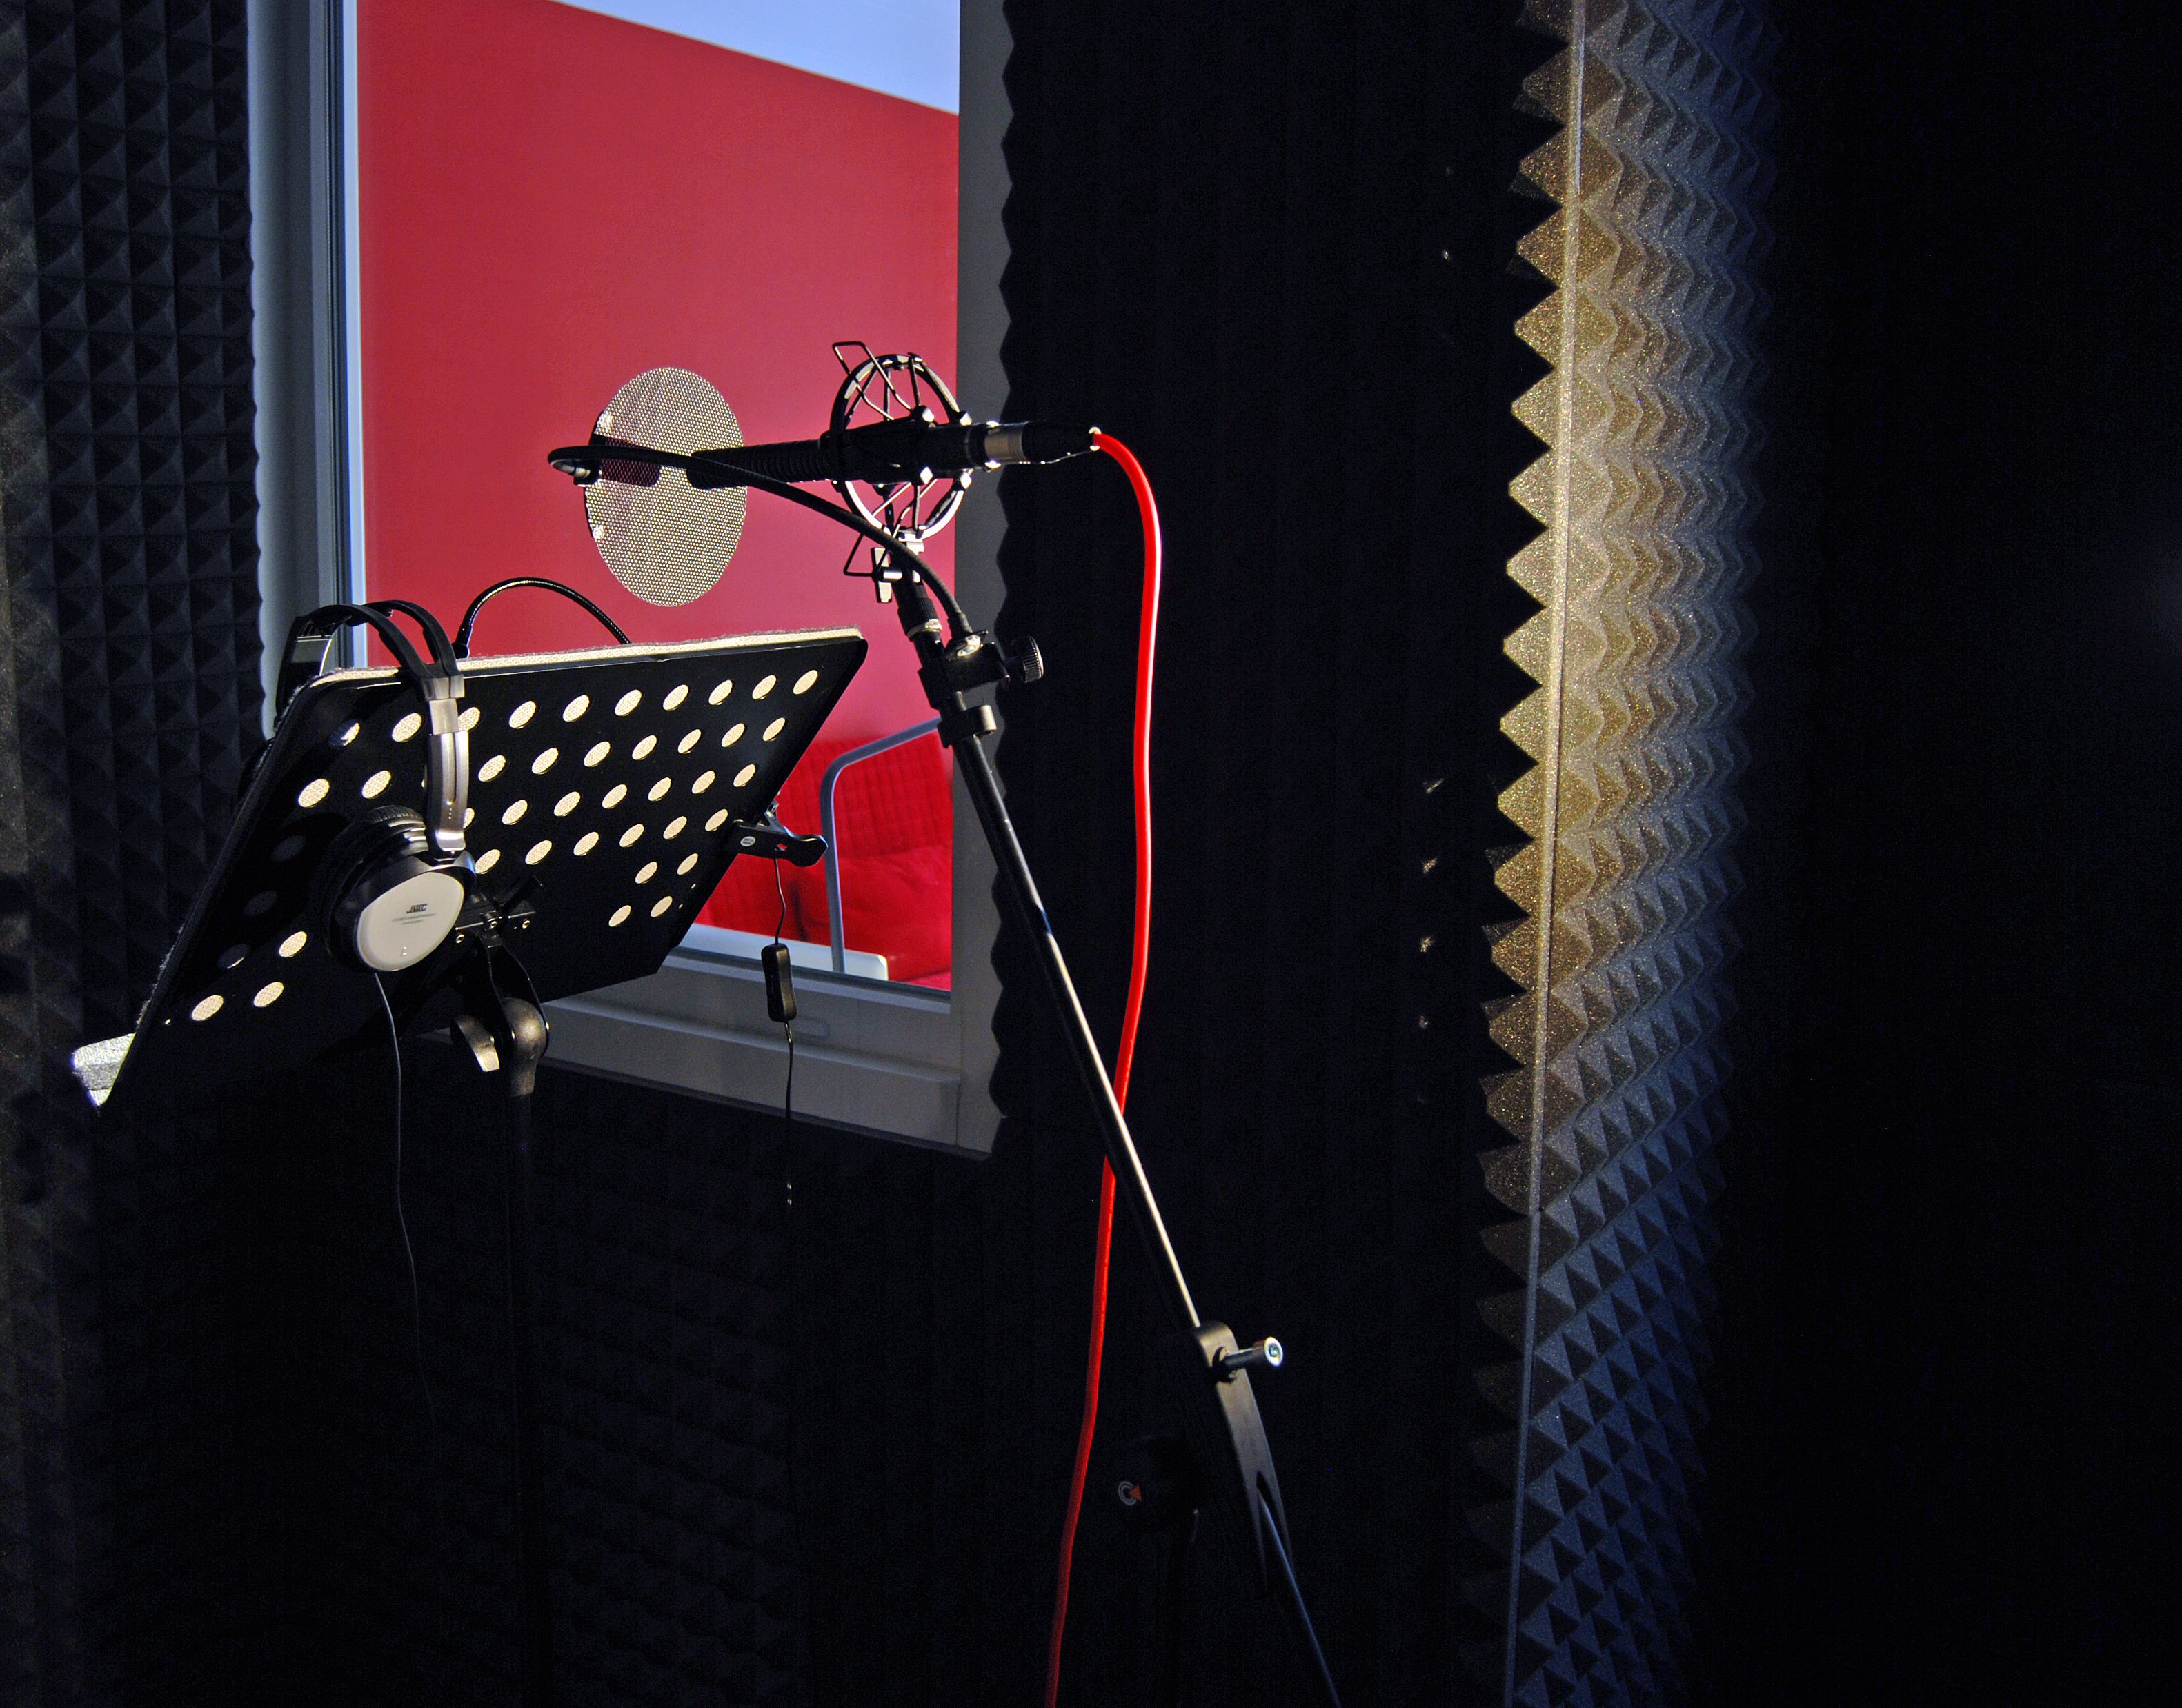 record 25 words Italian voiceover